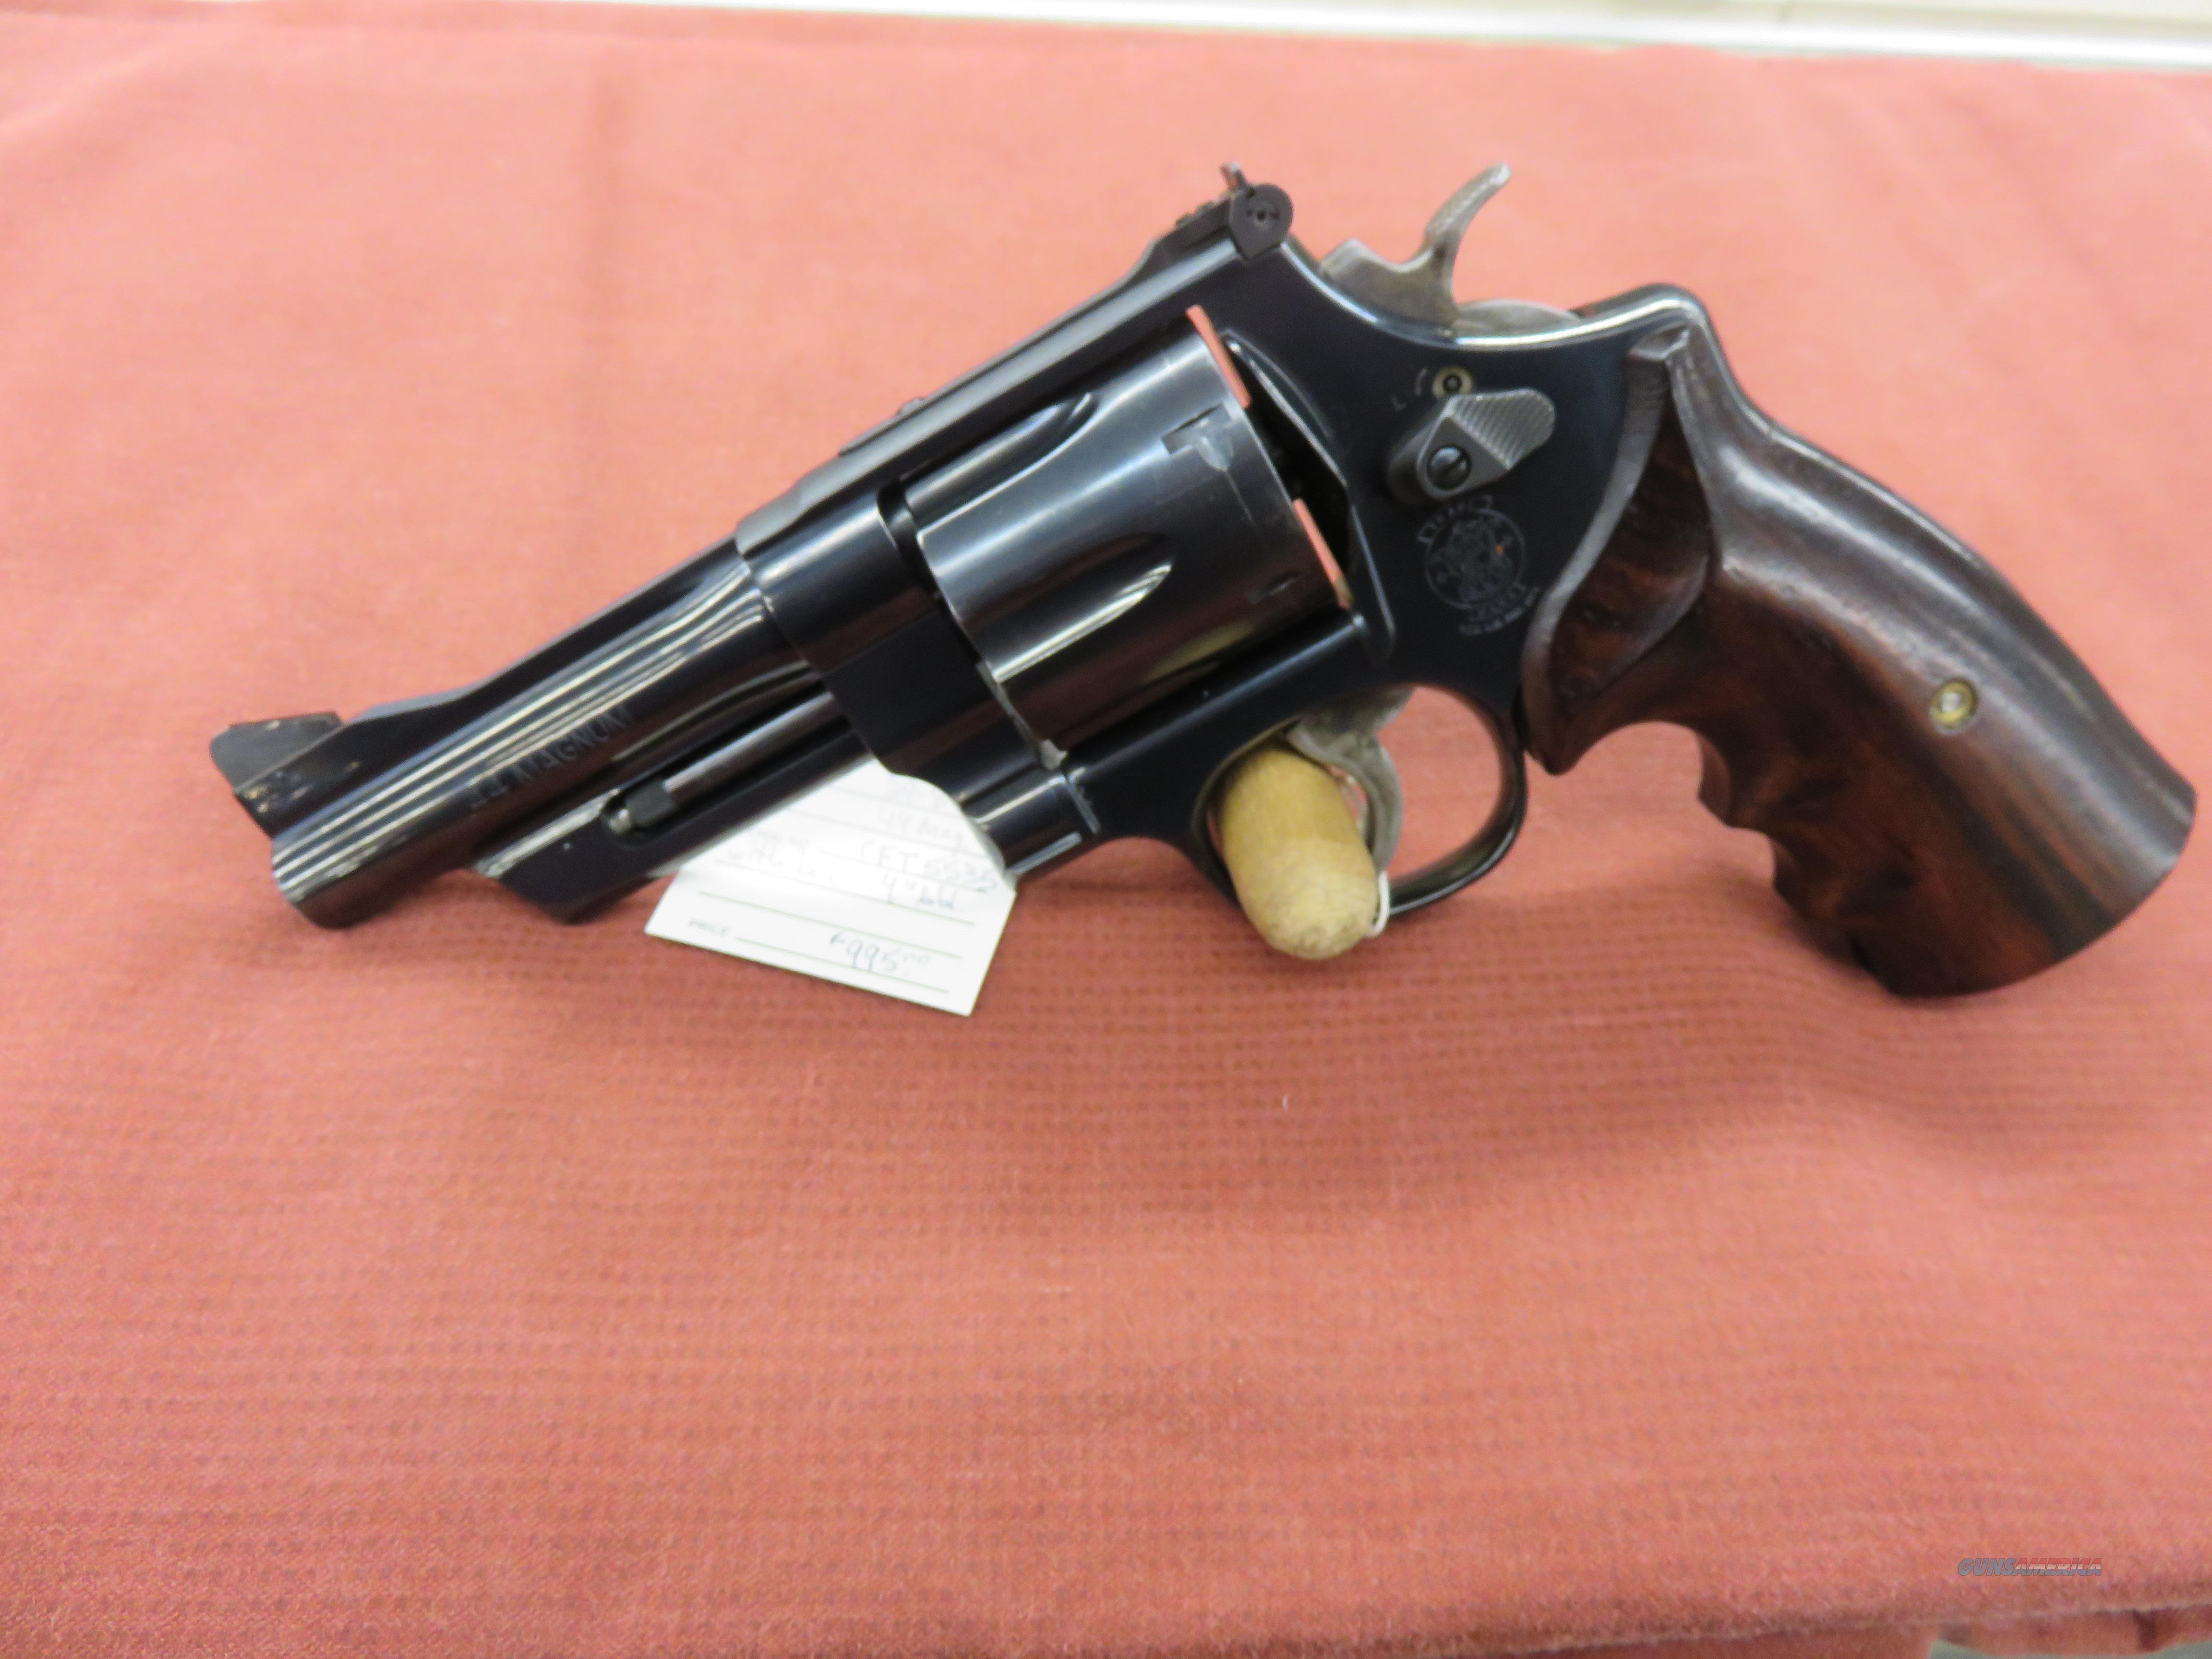 Smith & Wesson  29-8,   44 Mag.  Guns > Pistols > Smith & Wesson Revolvers > Full Frame Revolver